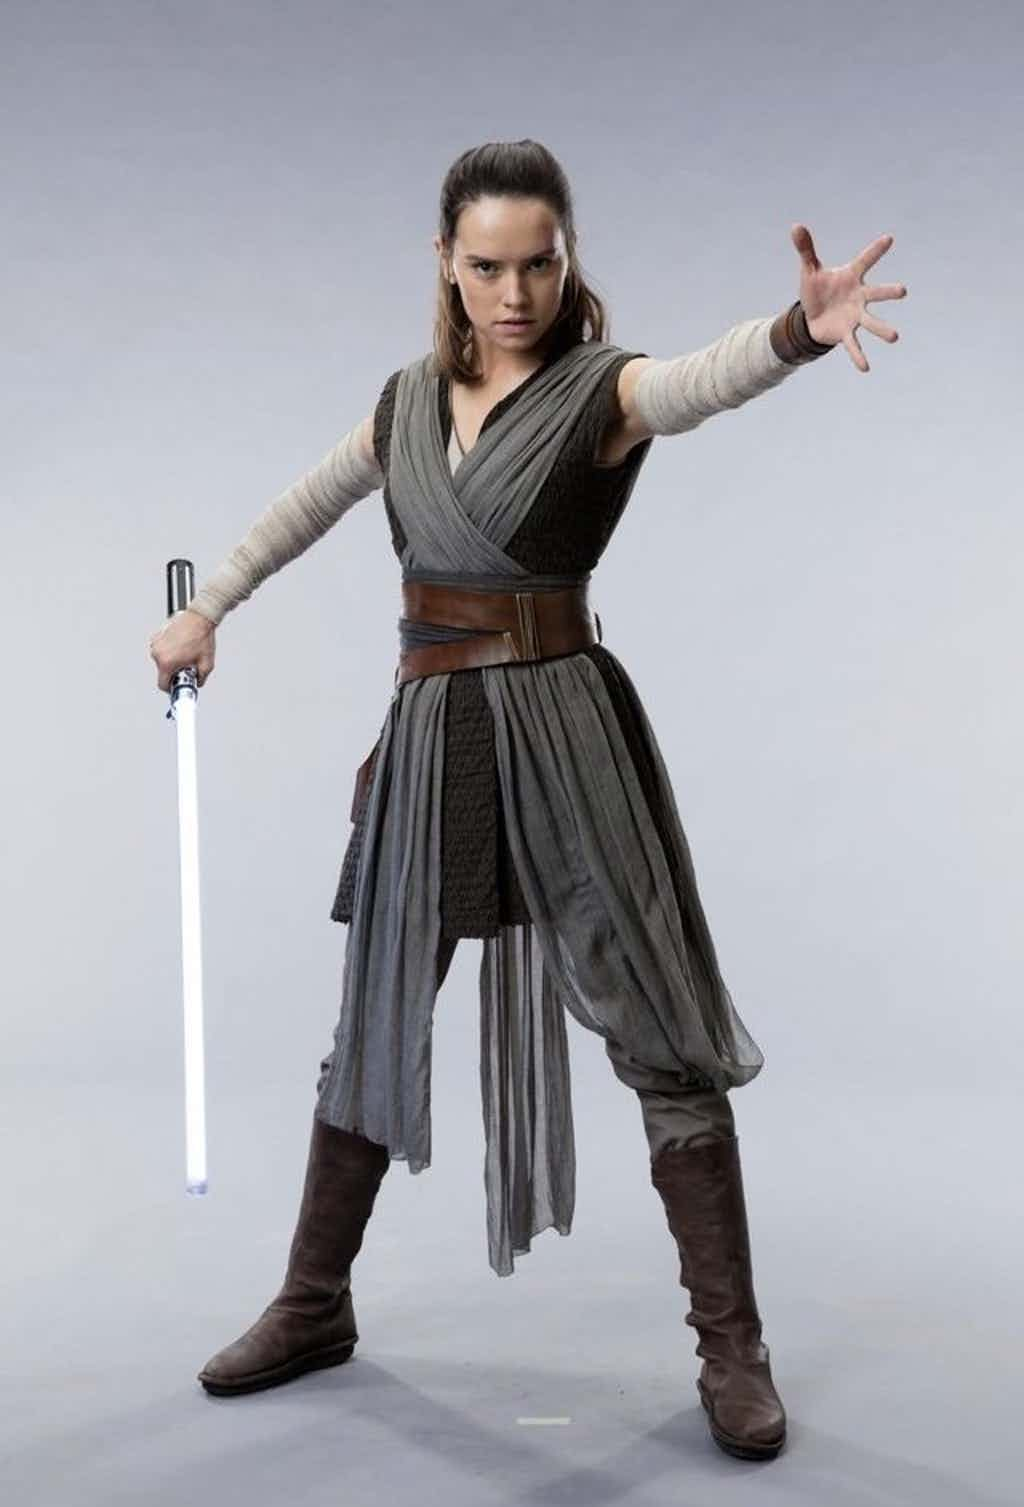 Star-Wars-The-Last-Jedi-Rey-in-Grey-Tunic-Costume-Prop-Lightsaber.jpg